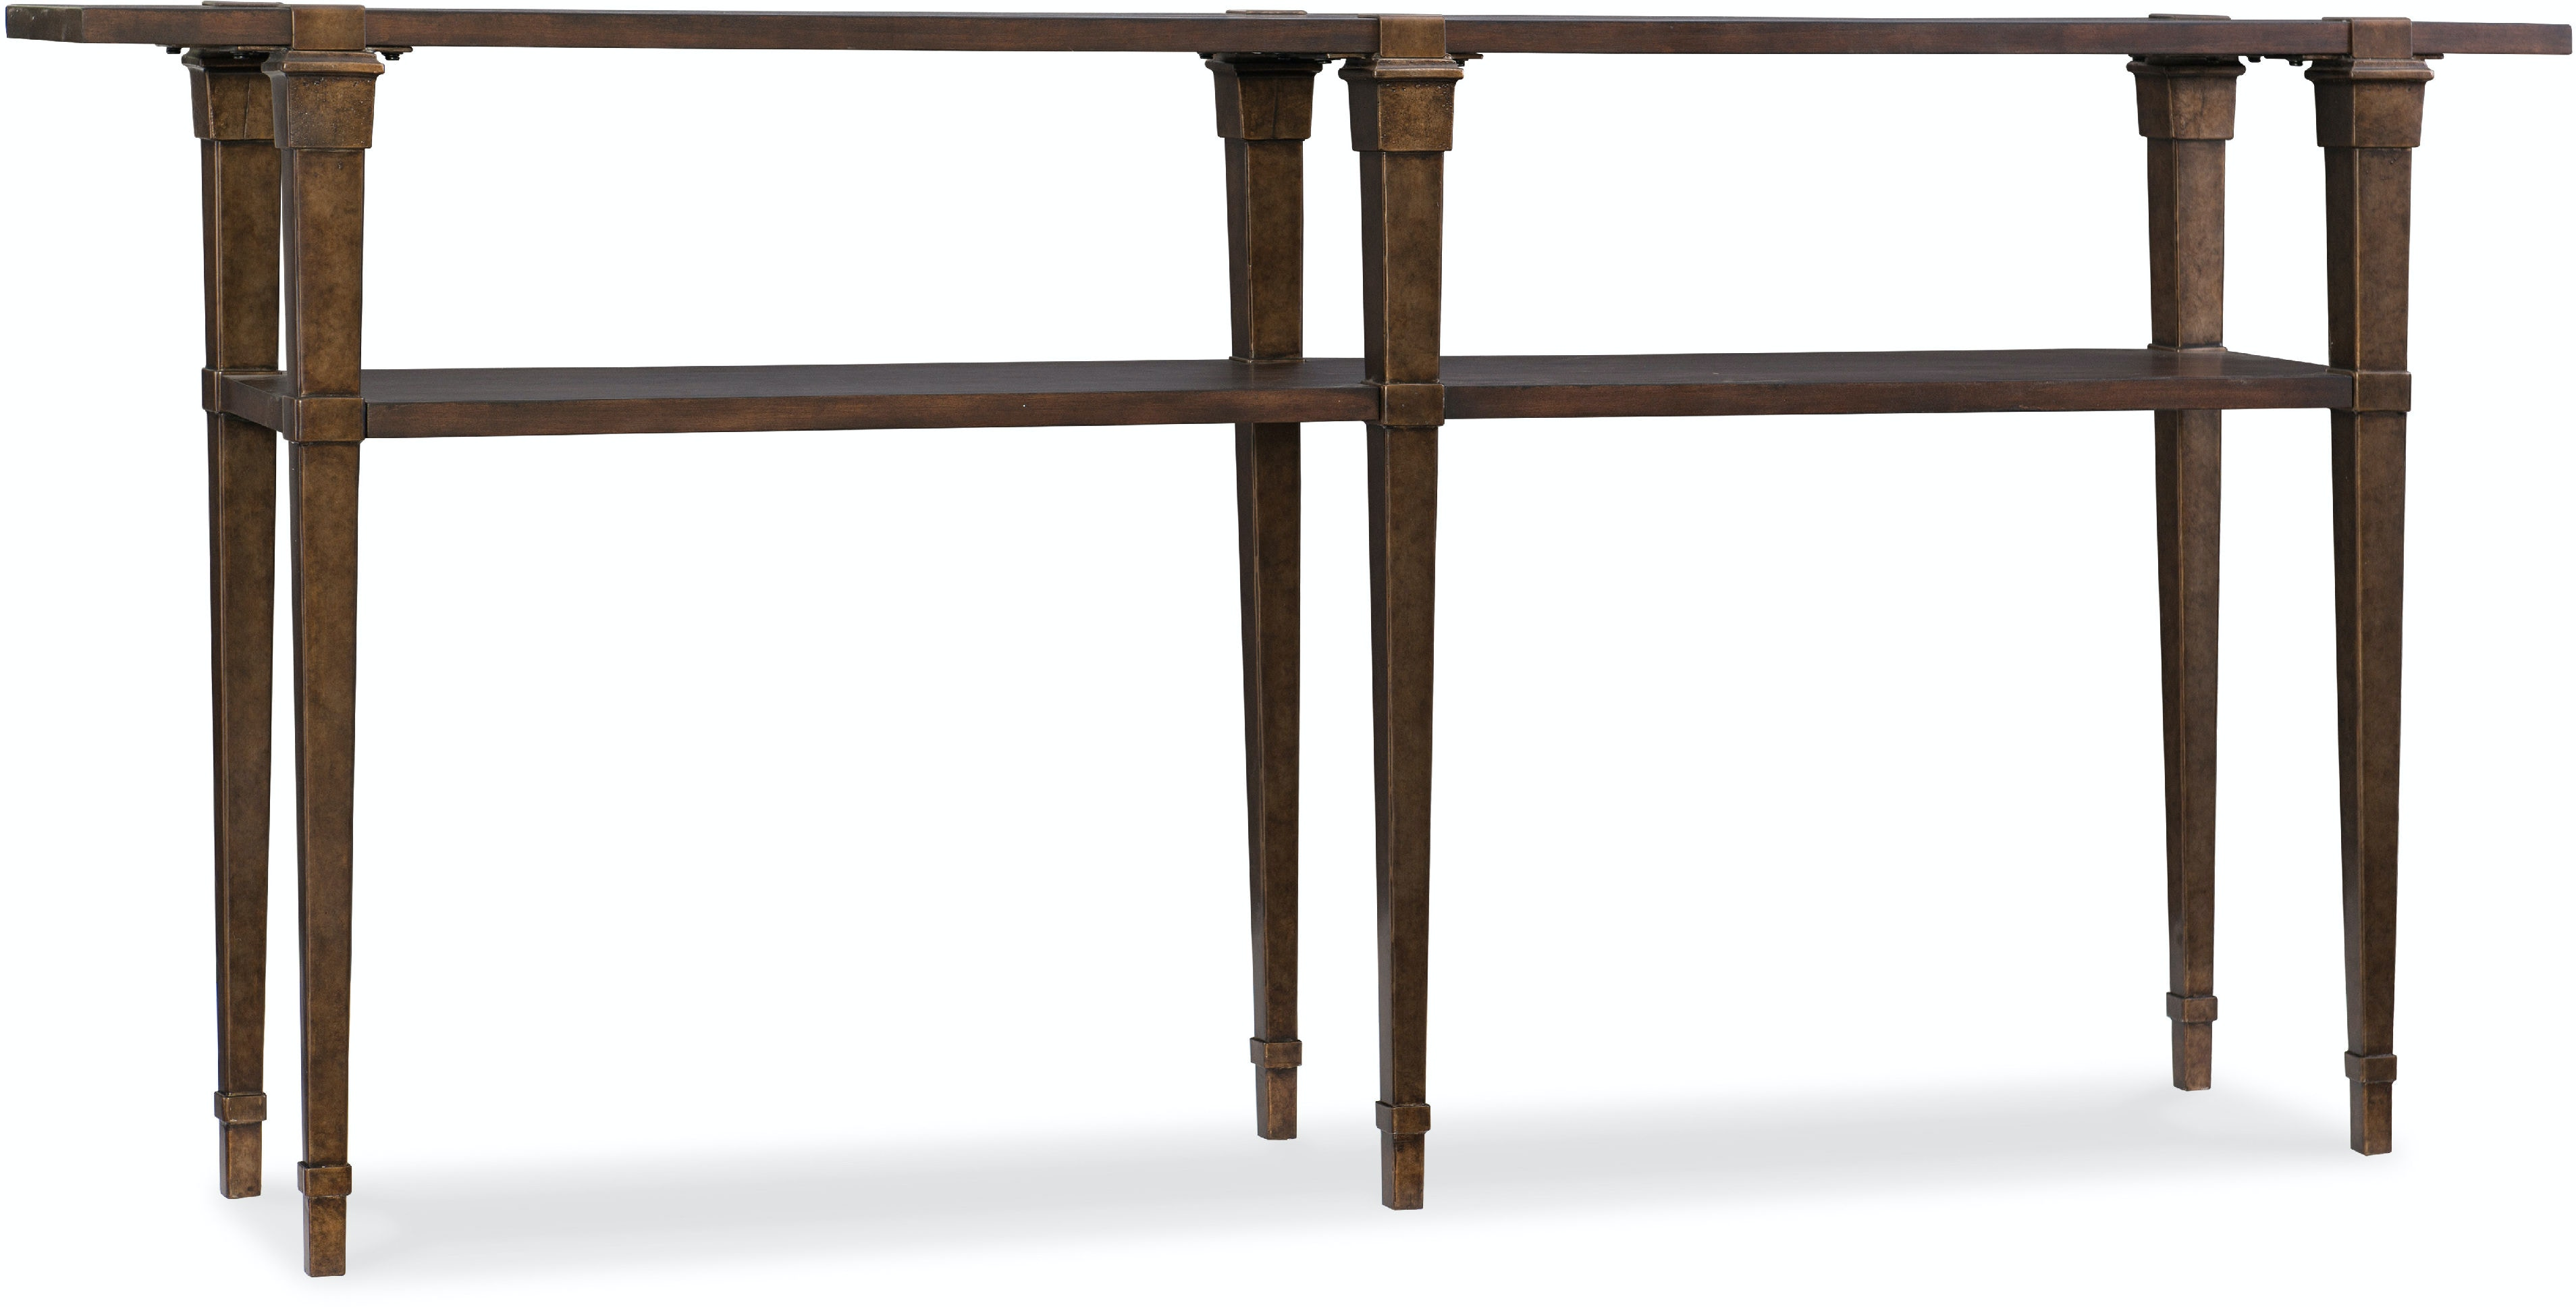 Hooker furniture living room skinny console table 5589 85001 dkw hooker furniture skinny console table 5589 85001 dkw geotapseo Gallery